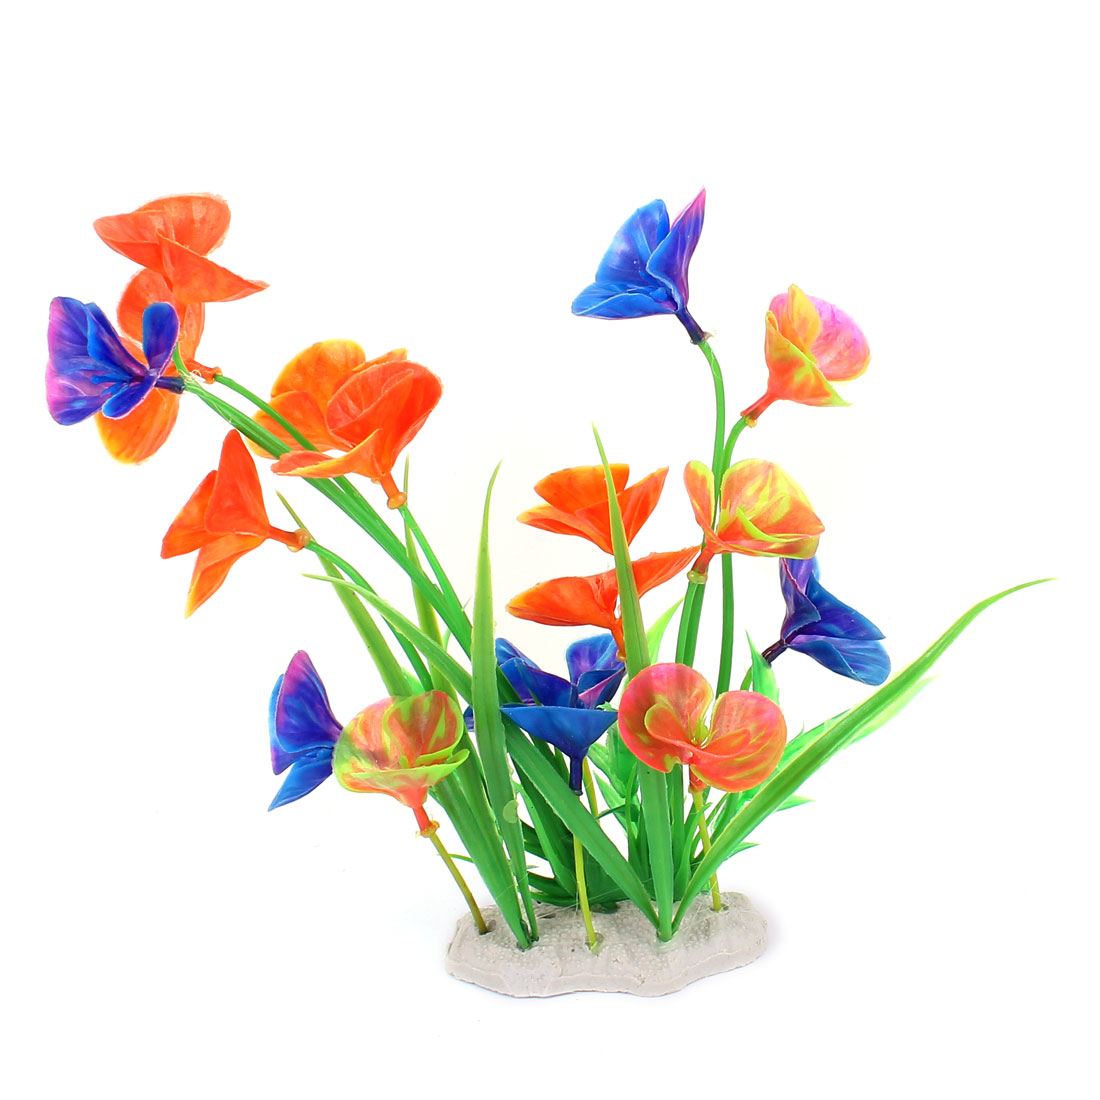 Aquarium Fish Tank Plastic Decor Emulation Water Plant Grass Flower 19cm Height Multicolor